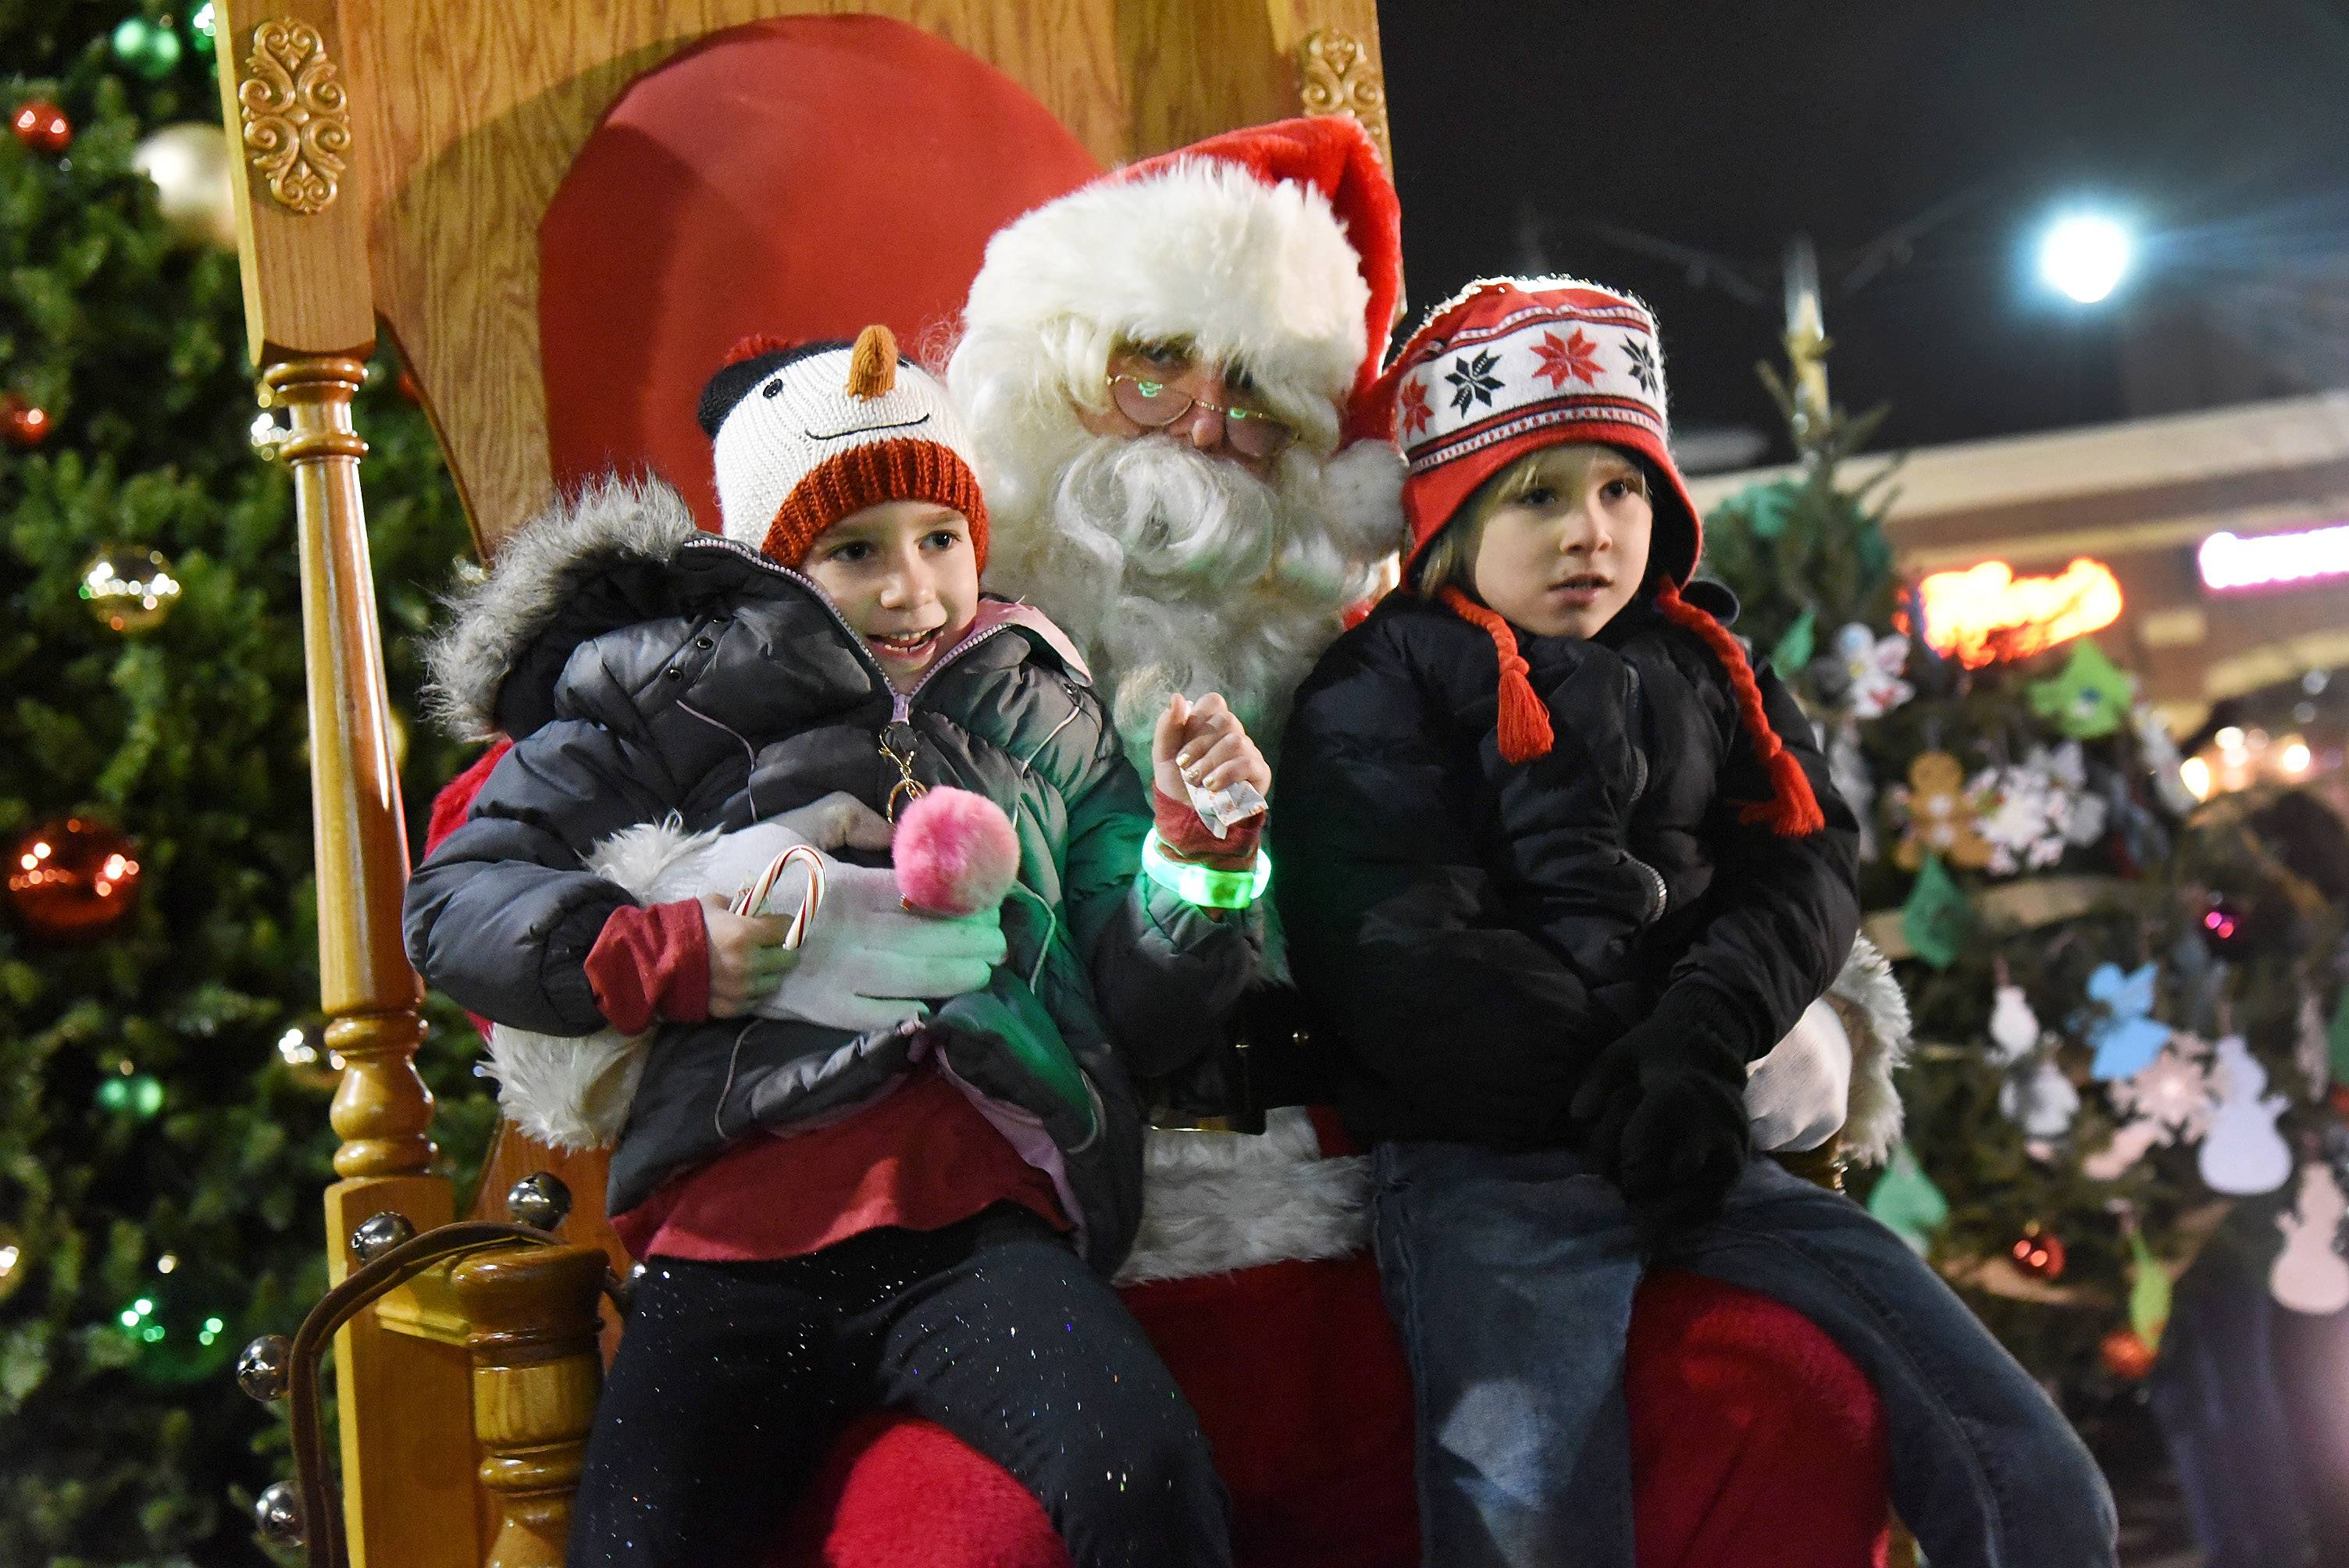 Kinzie and Jake Morgan of Des Plaines visit with Santa during the Des Plaines holiday lighting festivities in Metropolitan Square.